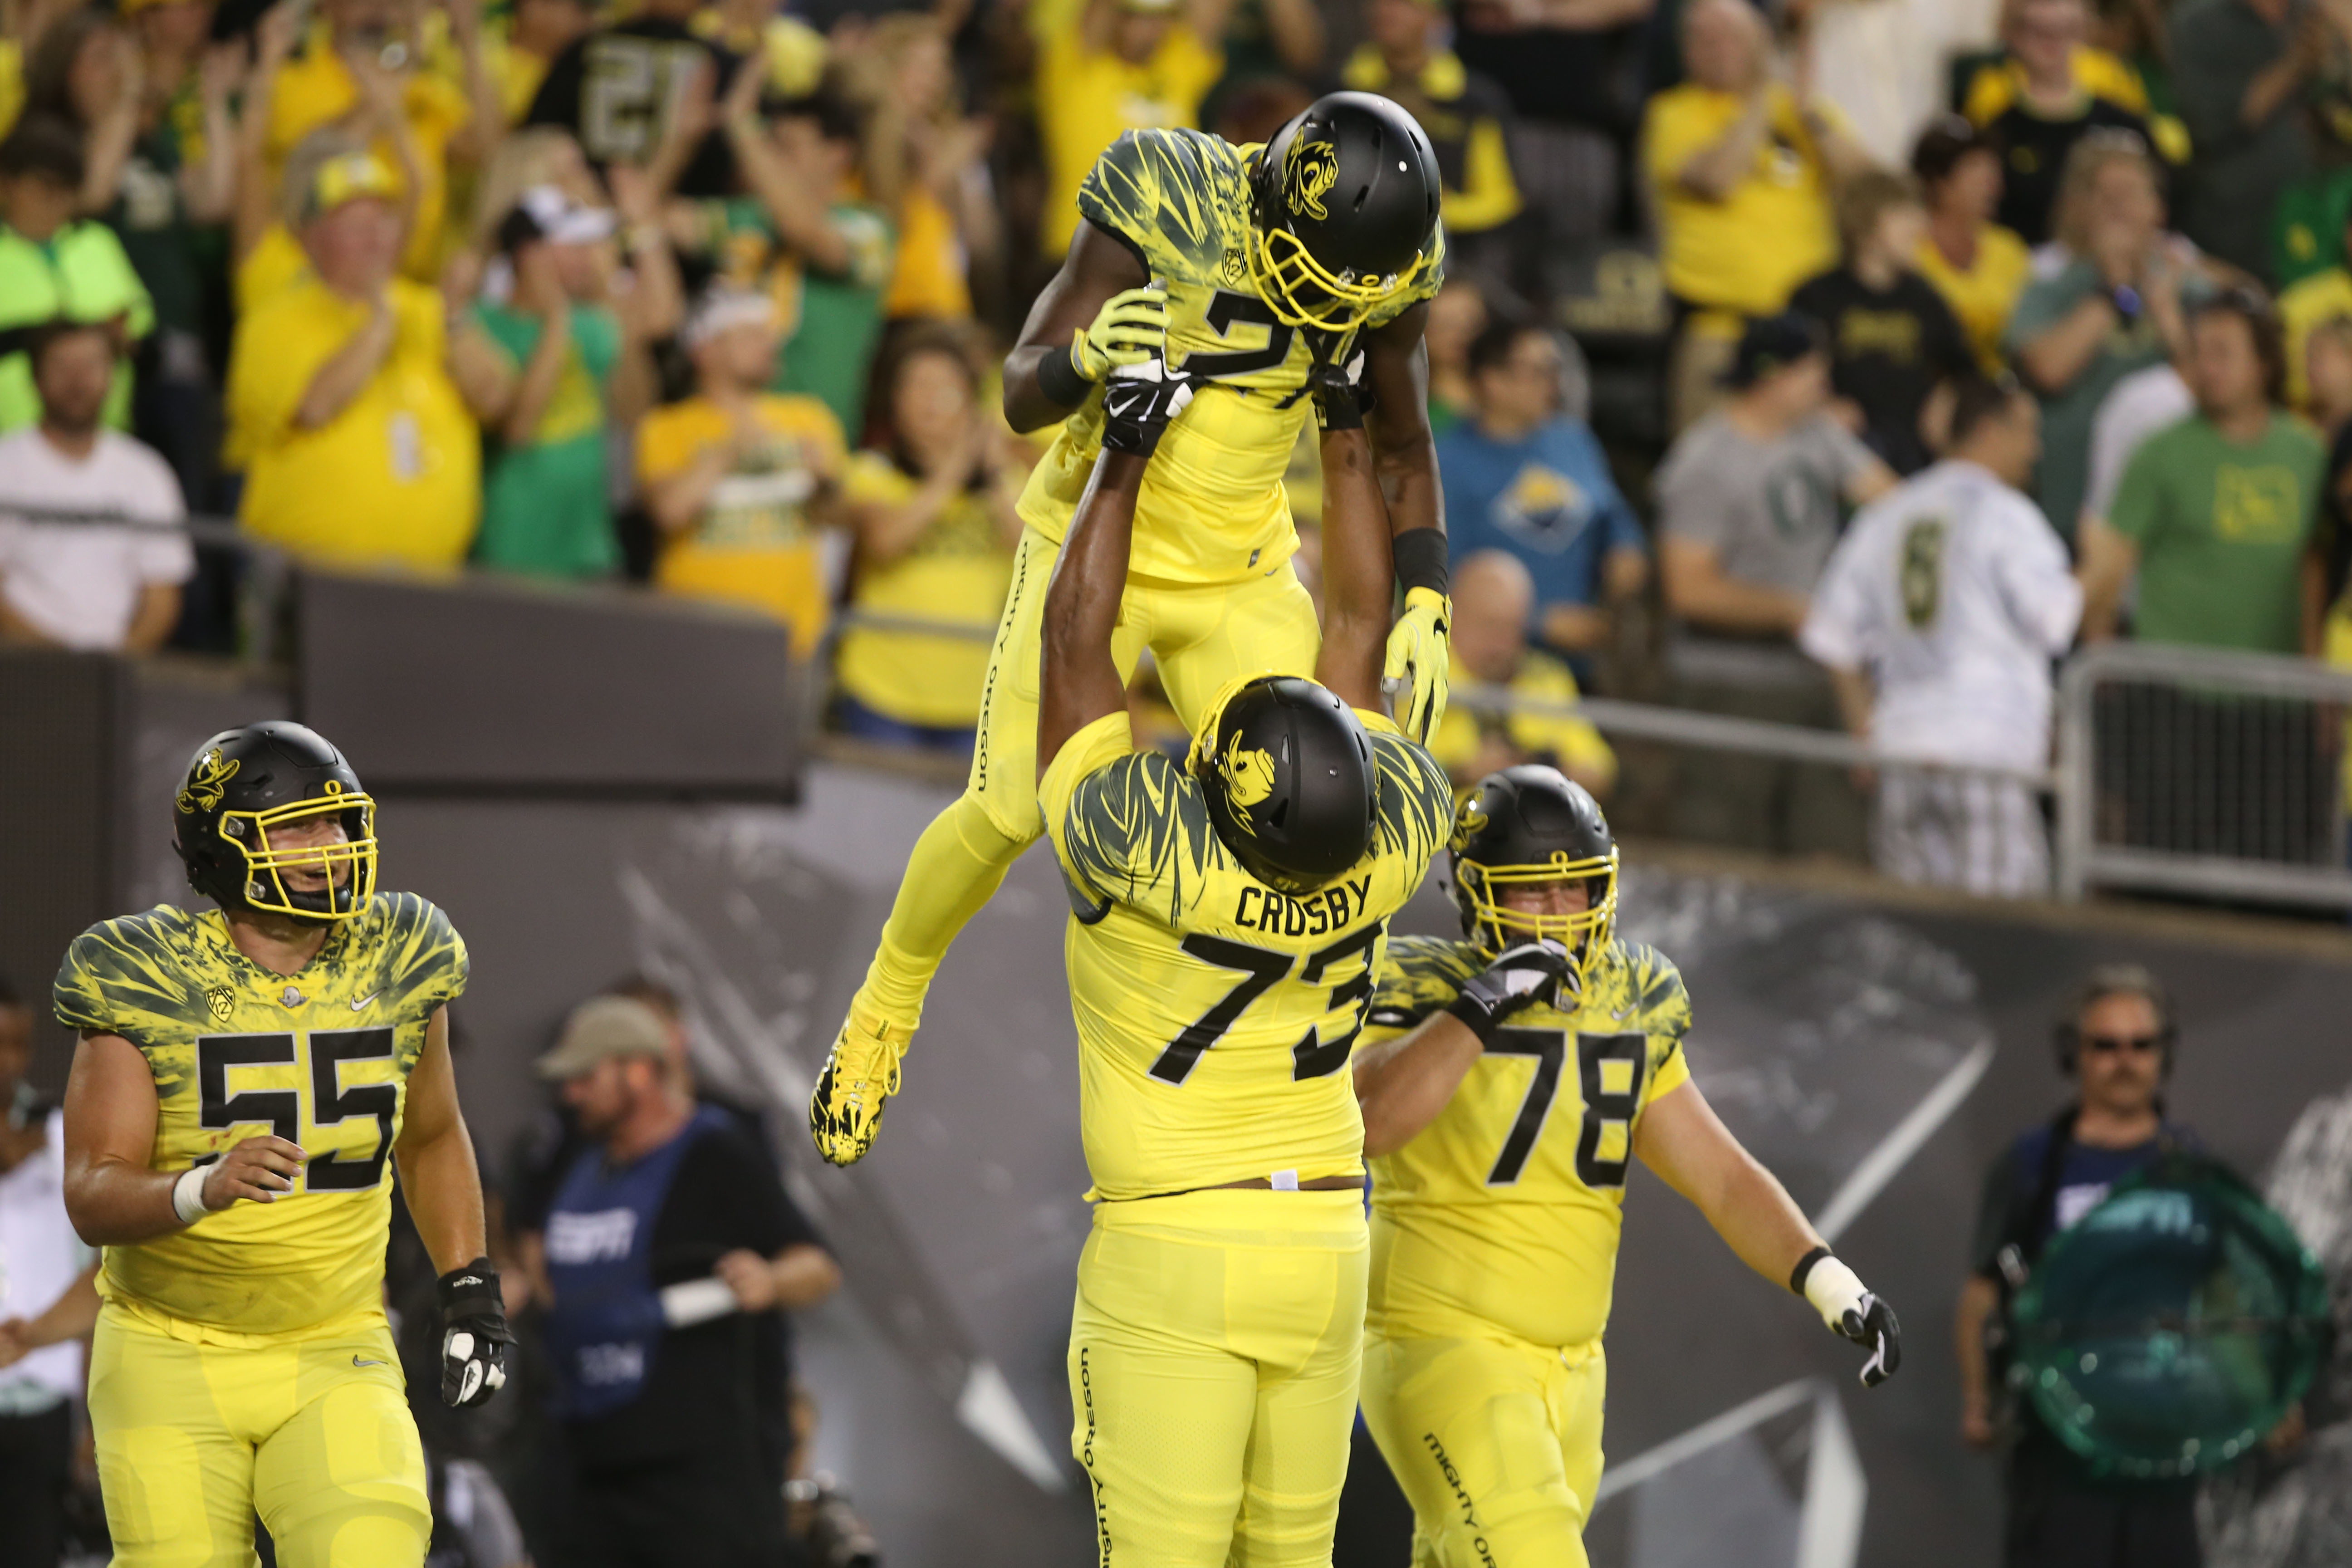 FILE - In this Sept. 10, 2016, file photo, Oregon's Royce Freeman, center, is hoisted in the air by teammate Tyrell Crosby after scoring a touchdown against Virginia during the first quarter of an NCAA college football game in Eugene, Ore. Freeman got his